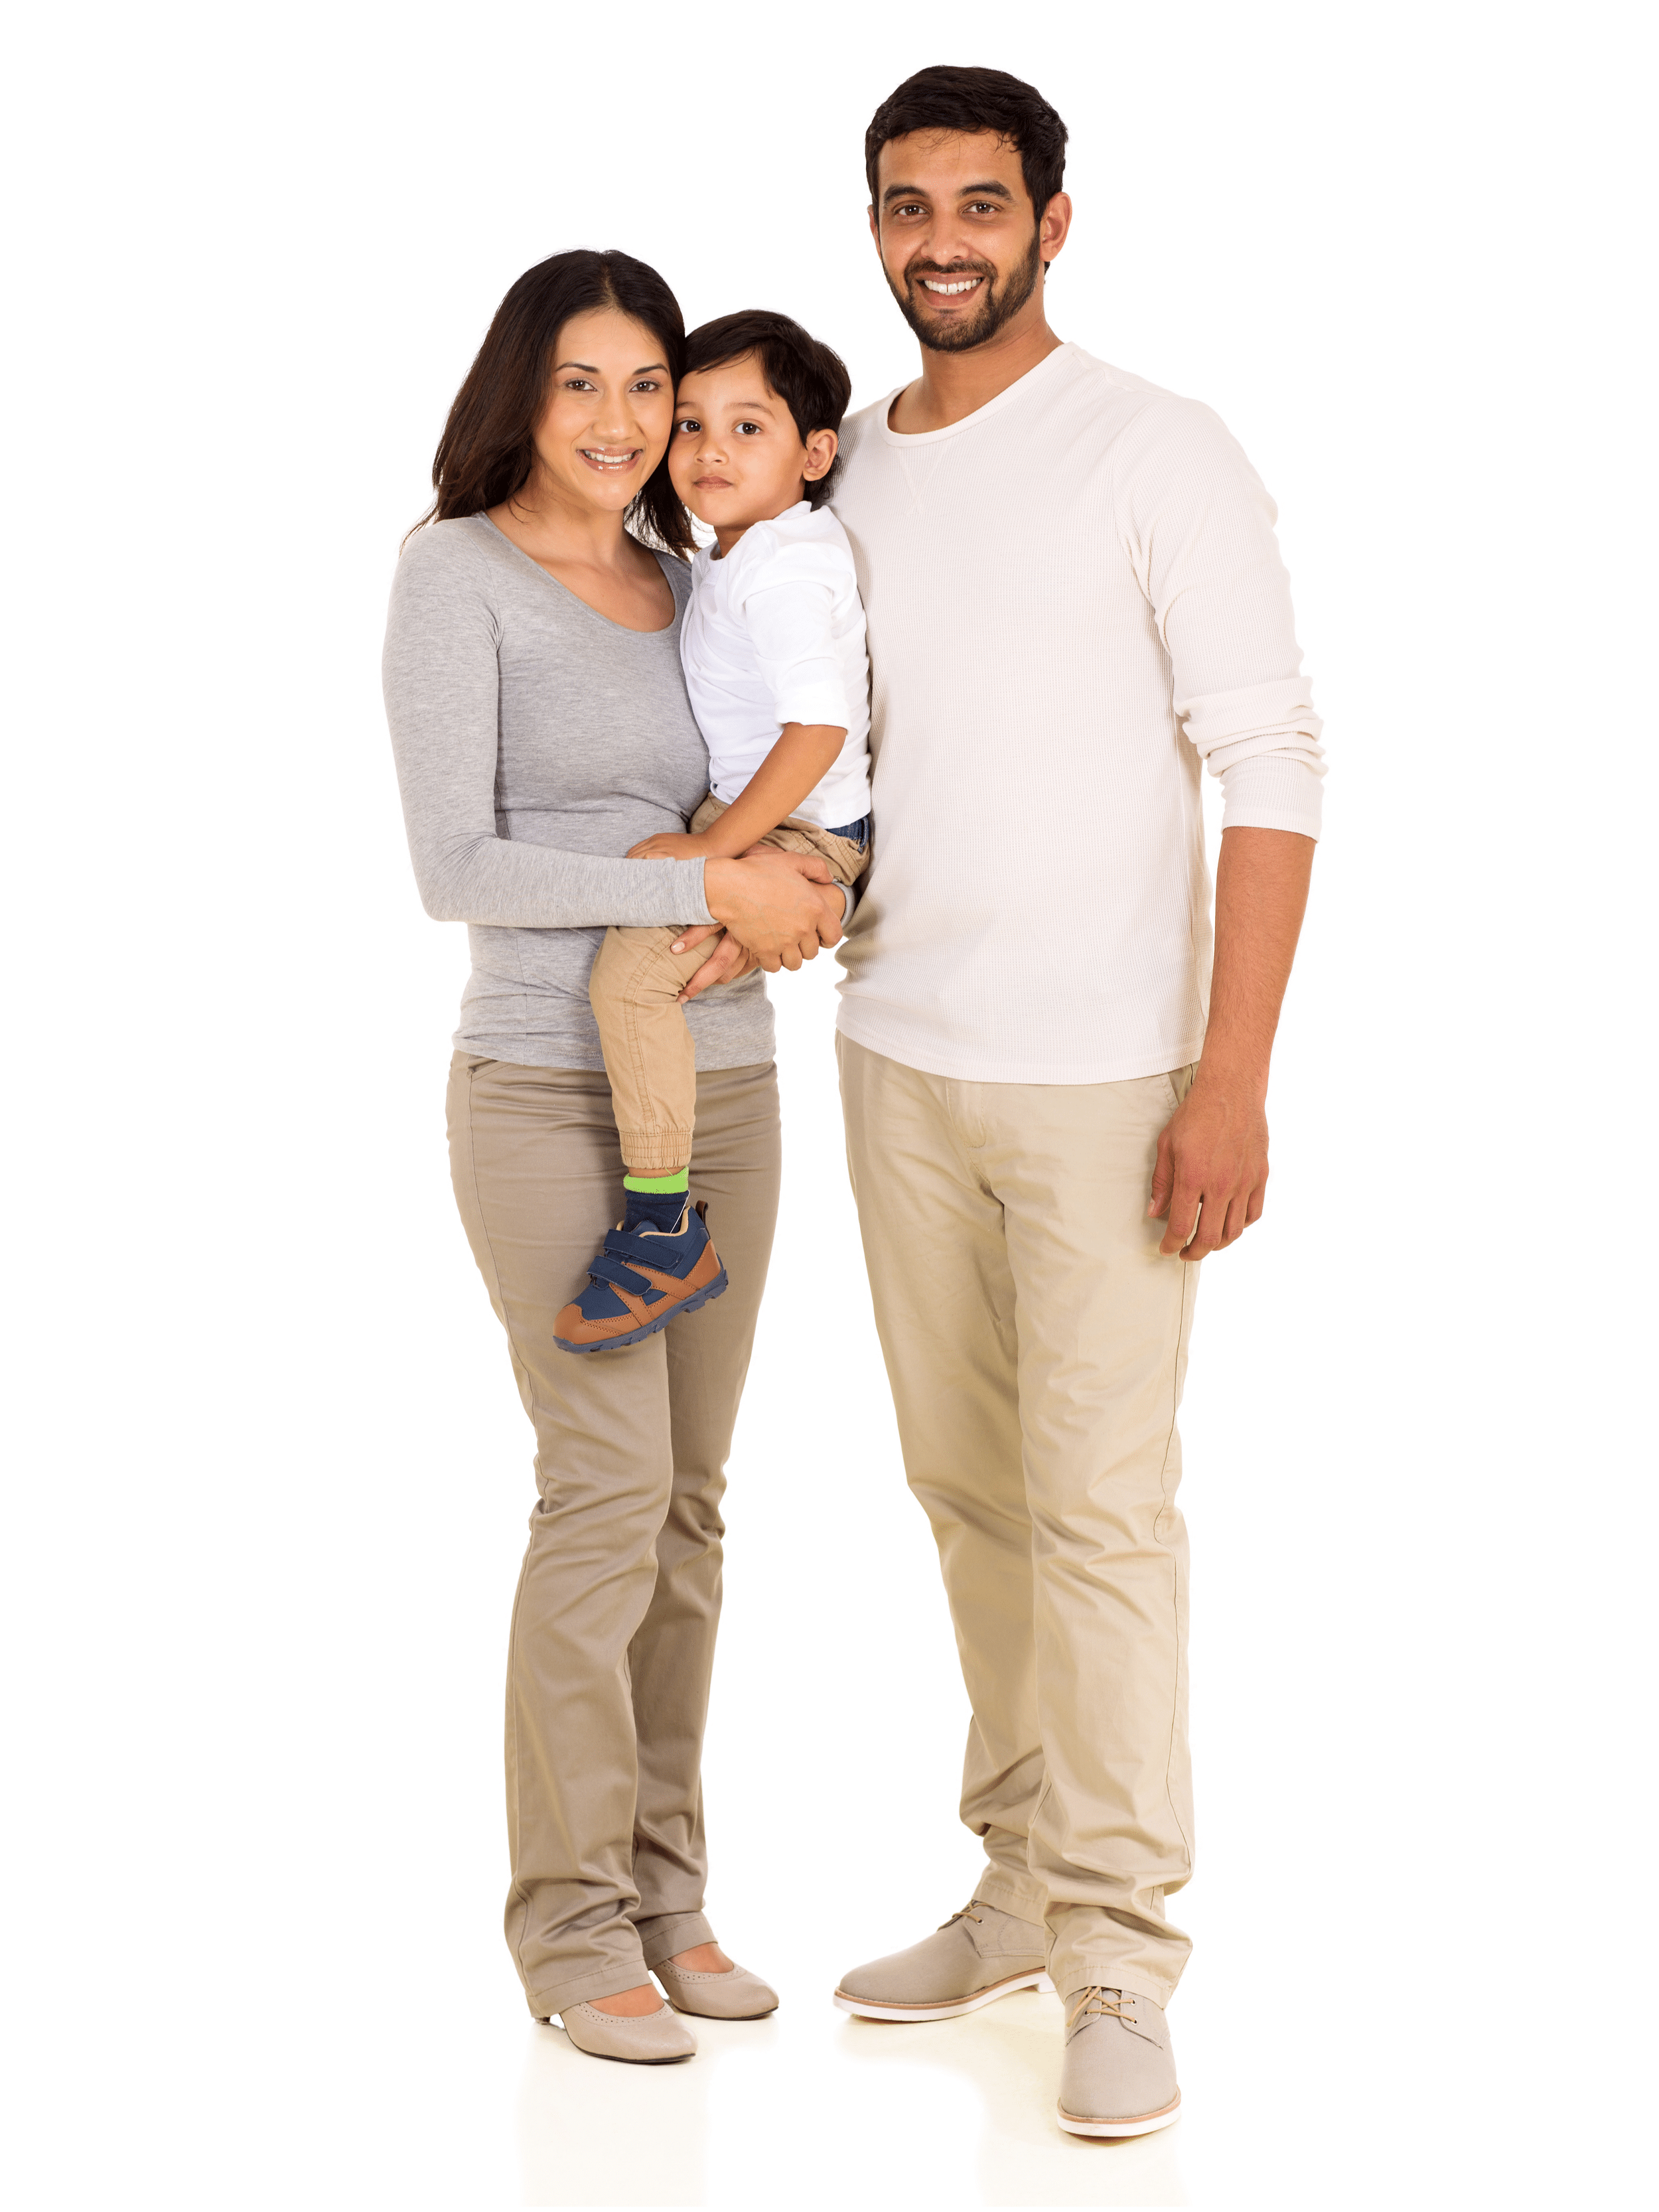 cleaning service mississauga happy family